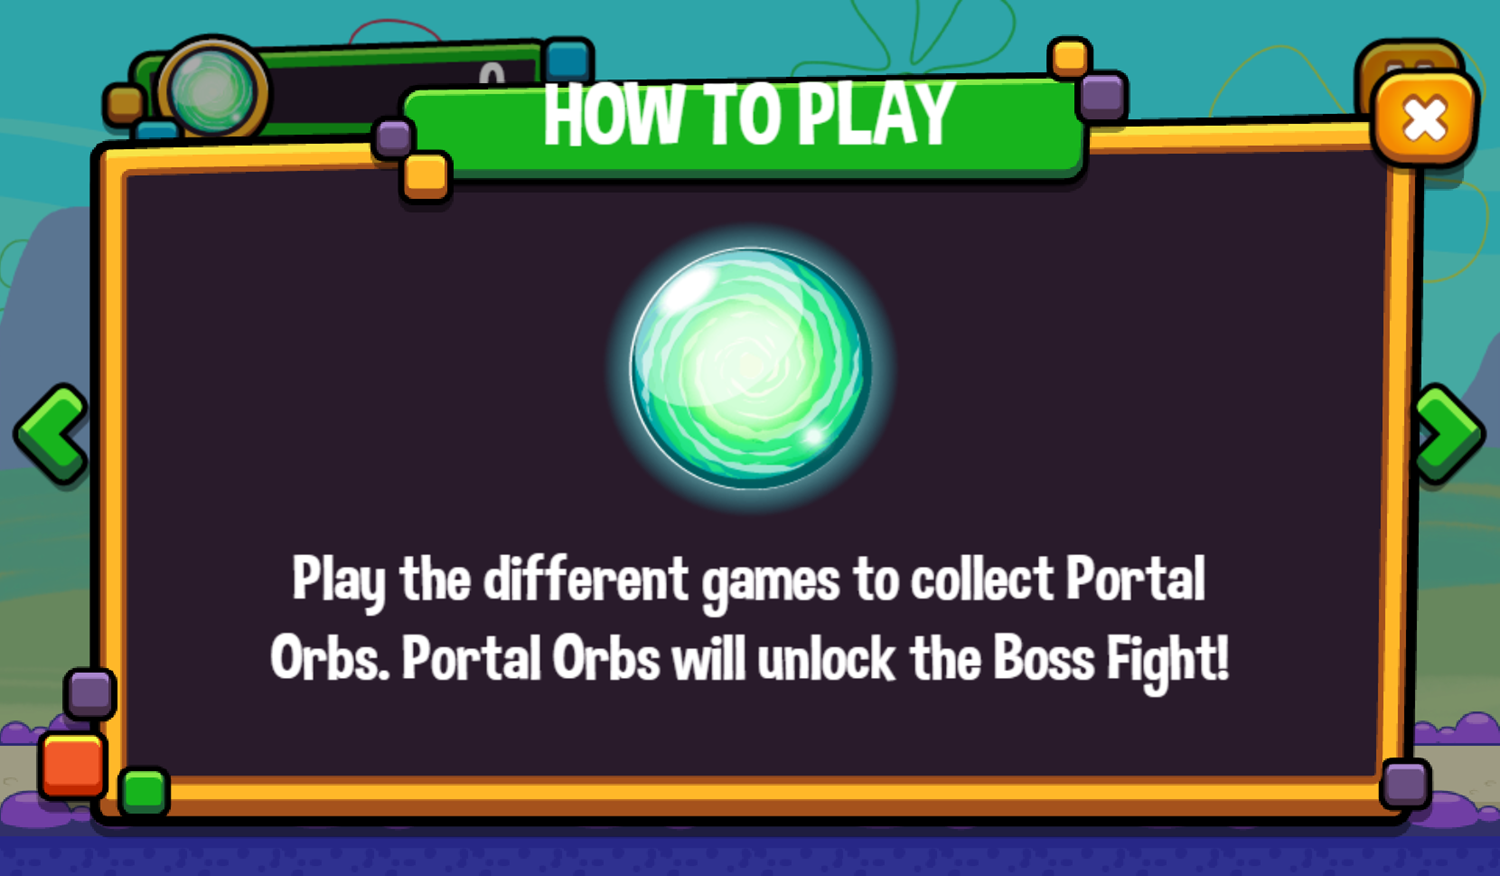 Portal Chase Game How To Play Screenshot.